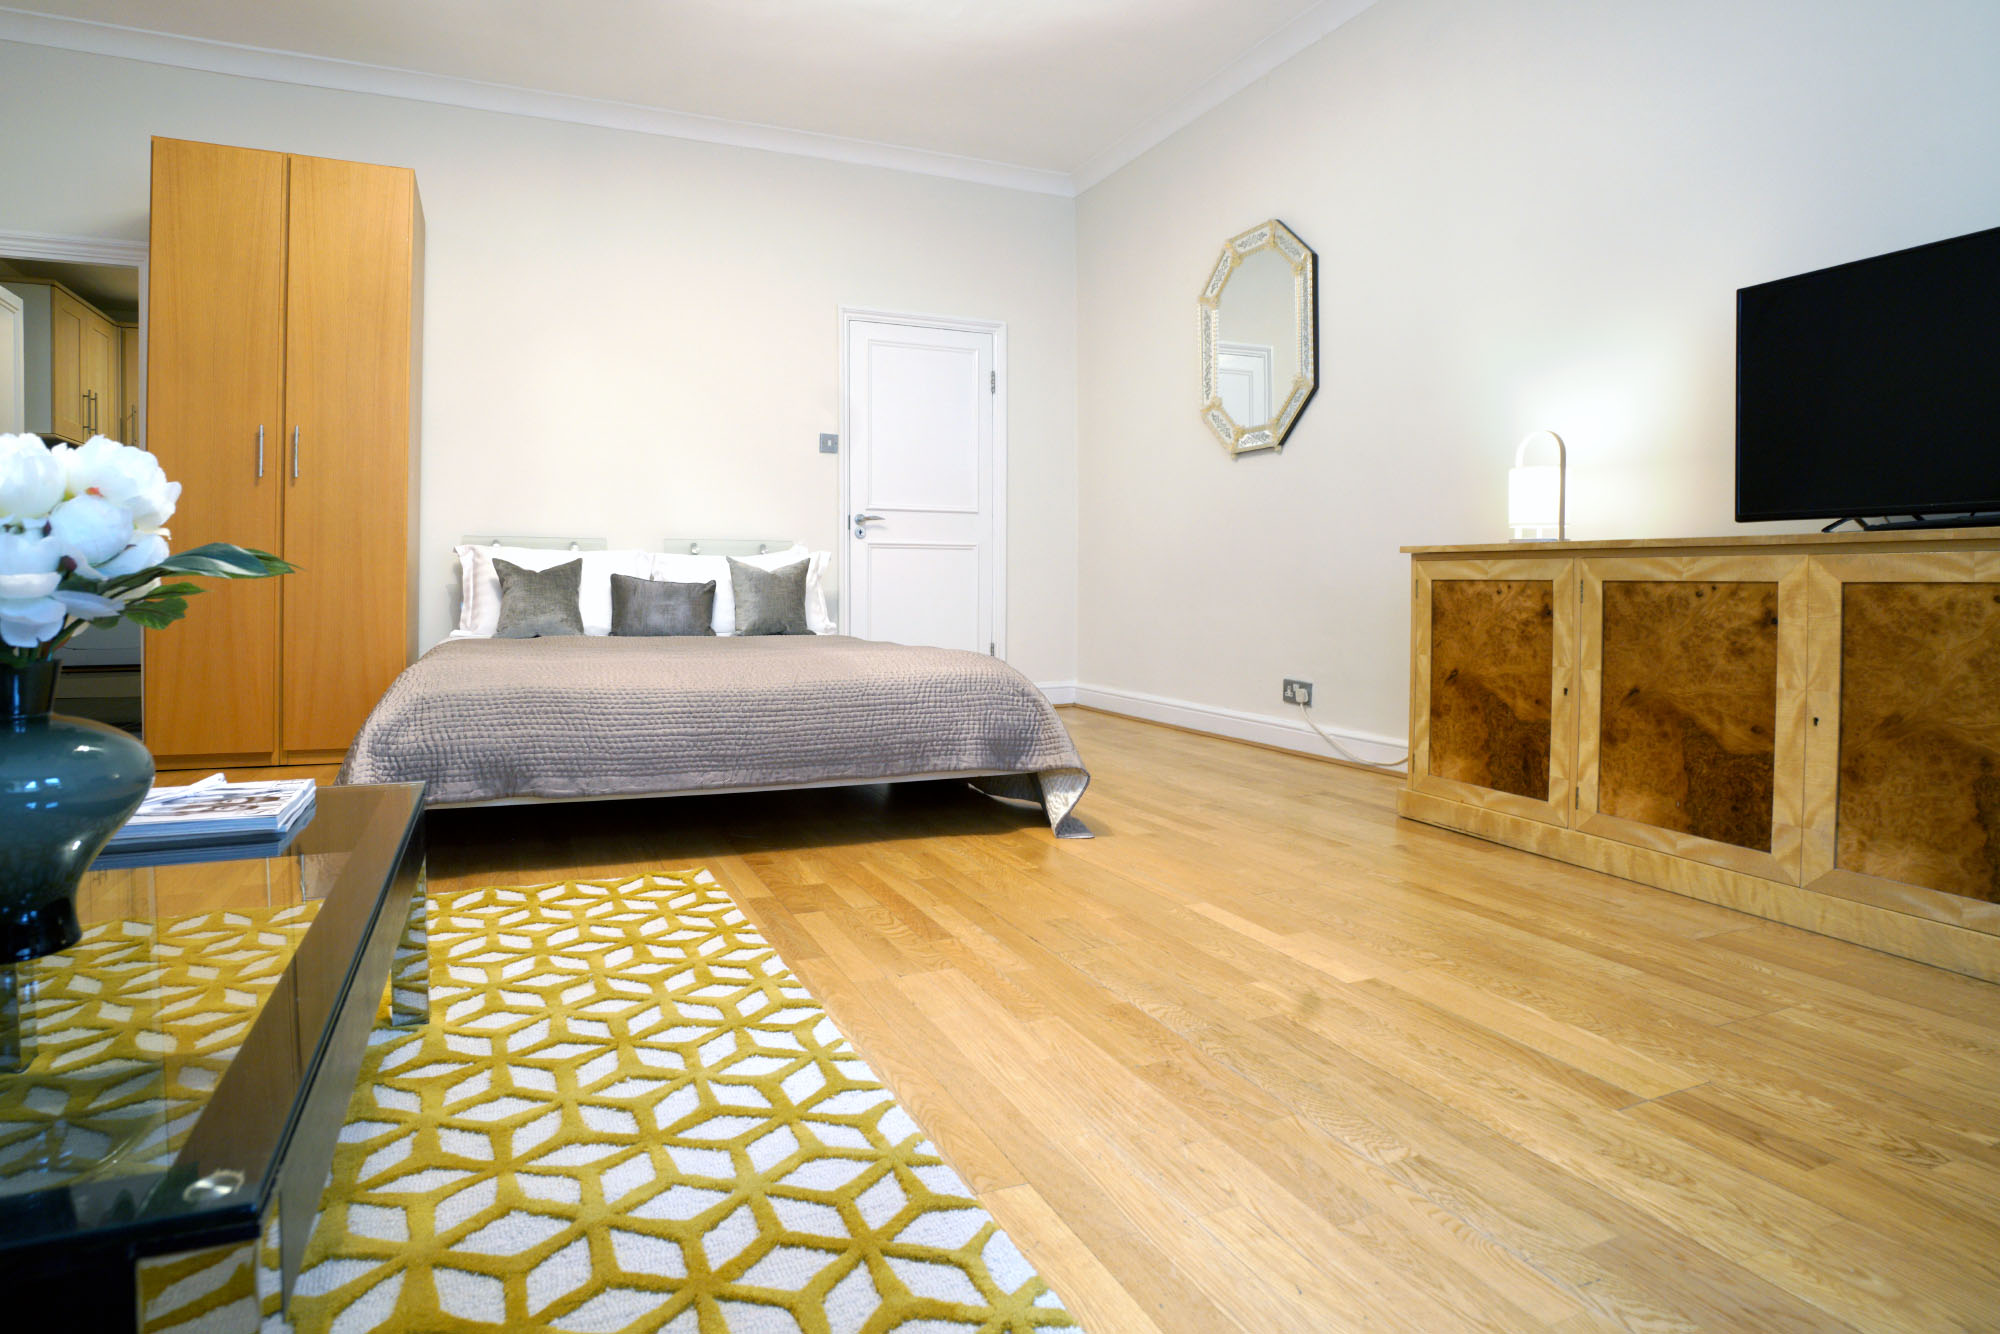 Efficiency Apartment Vs Studio Chesham Court Studio Apartment Maykenbel Properties